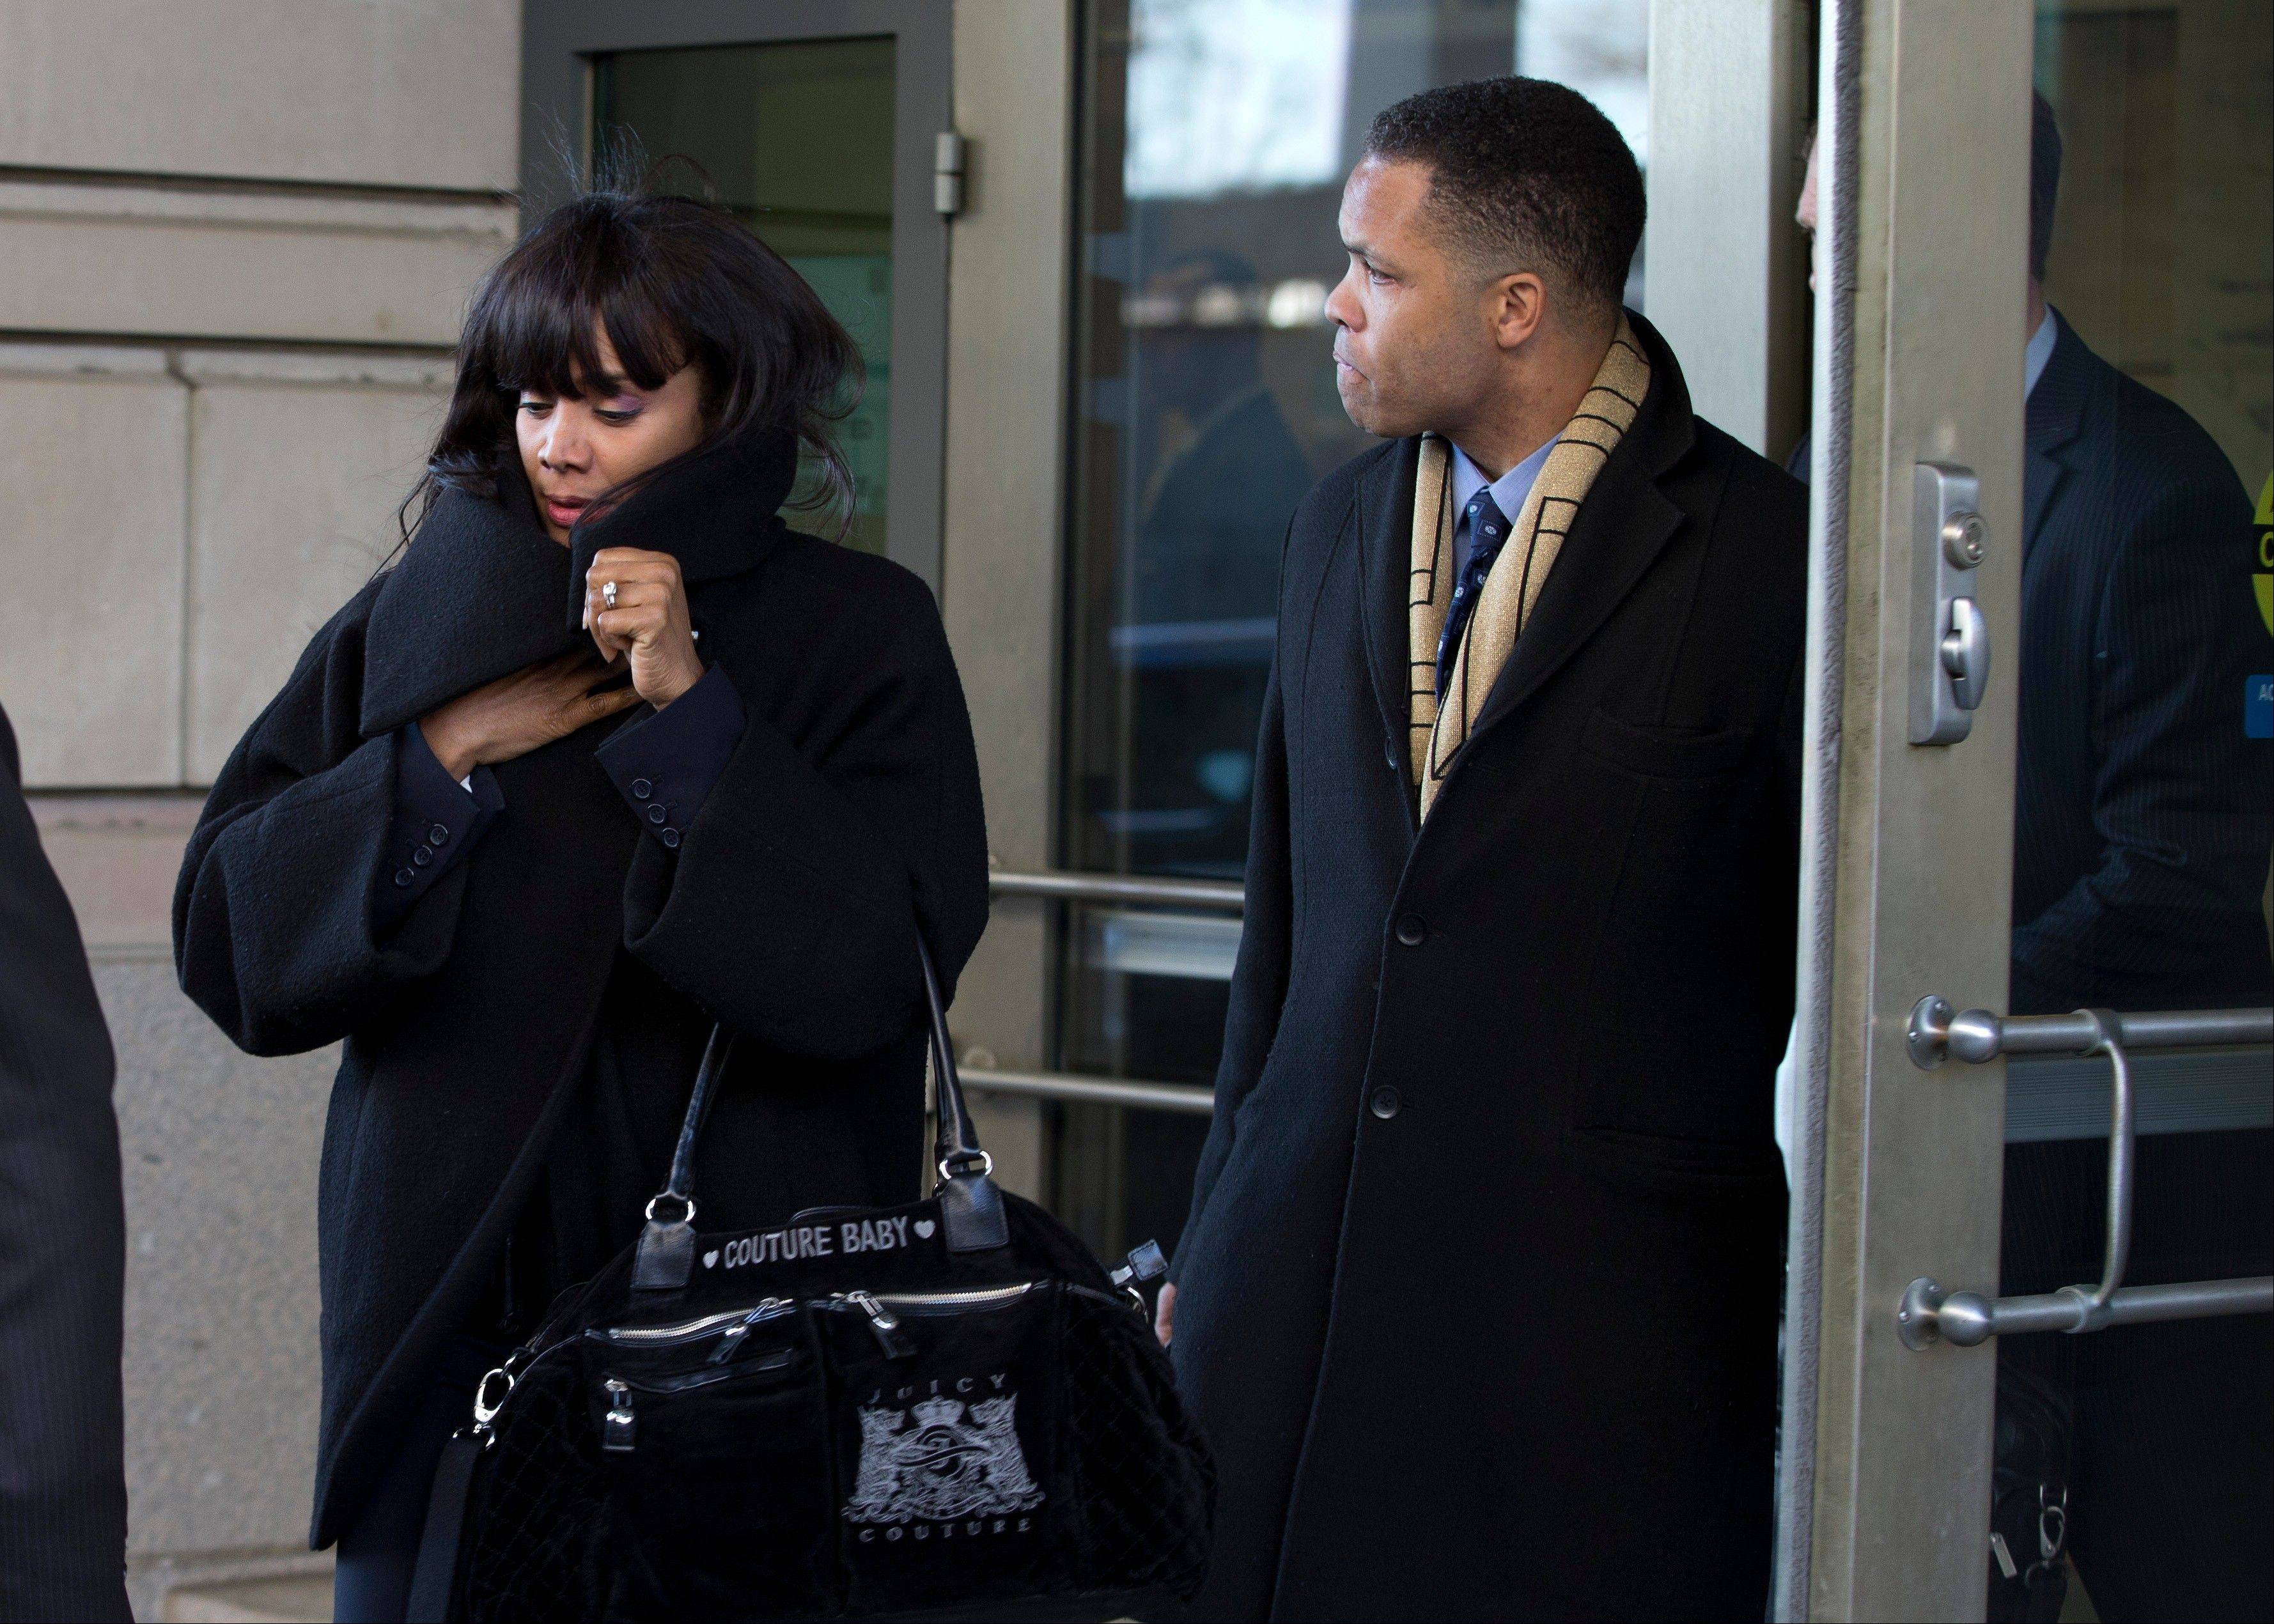 Former Illinois Rep. Jesse Jackson Jr. and his wife Sandi leave the E. Barrett Prettyman Federal Courthouse in Washington, Wednesday.